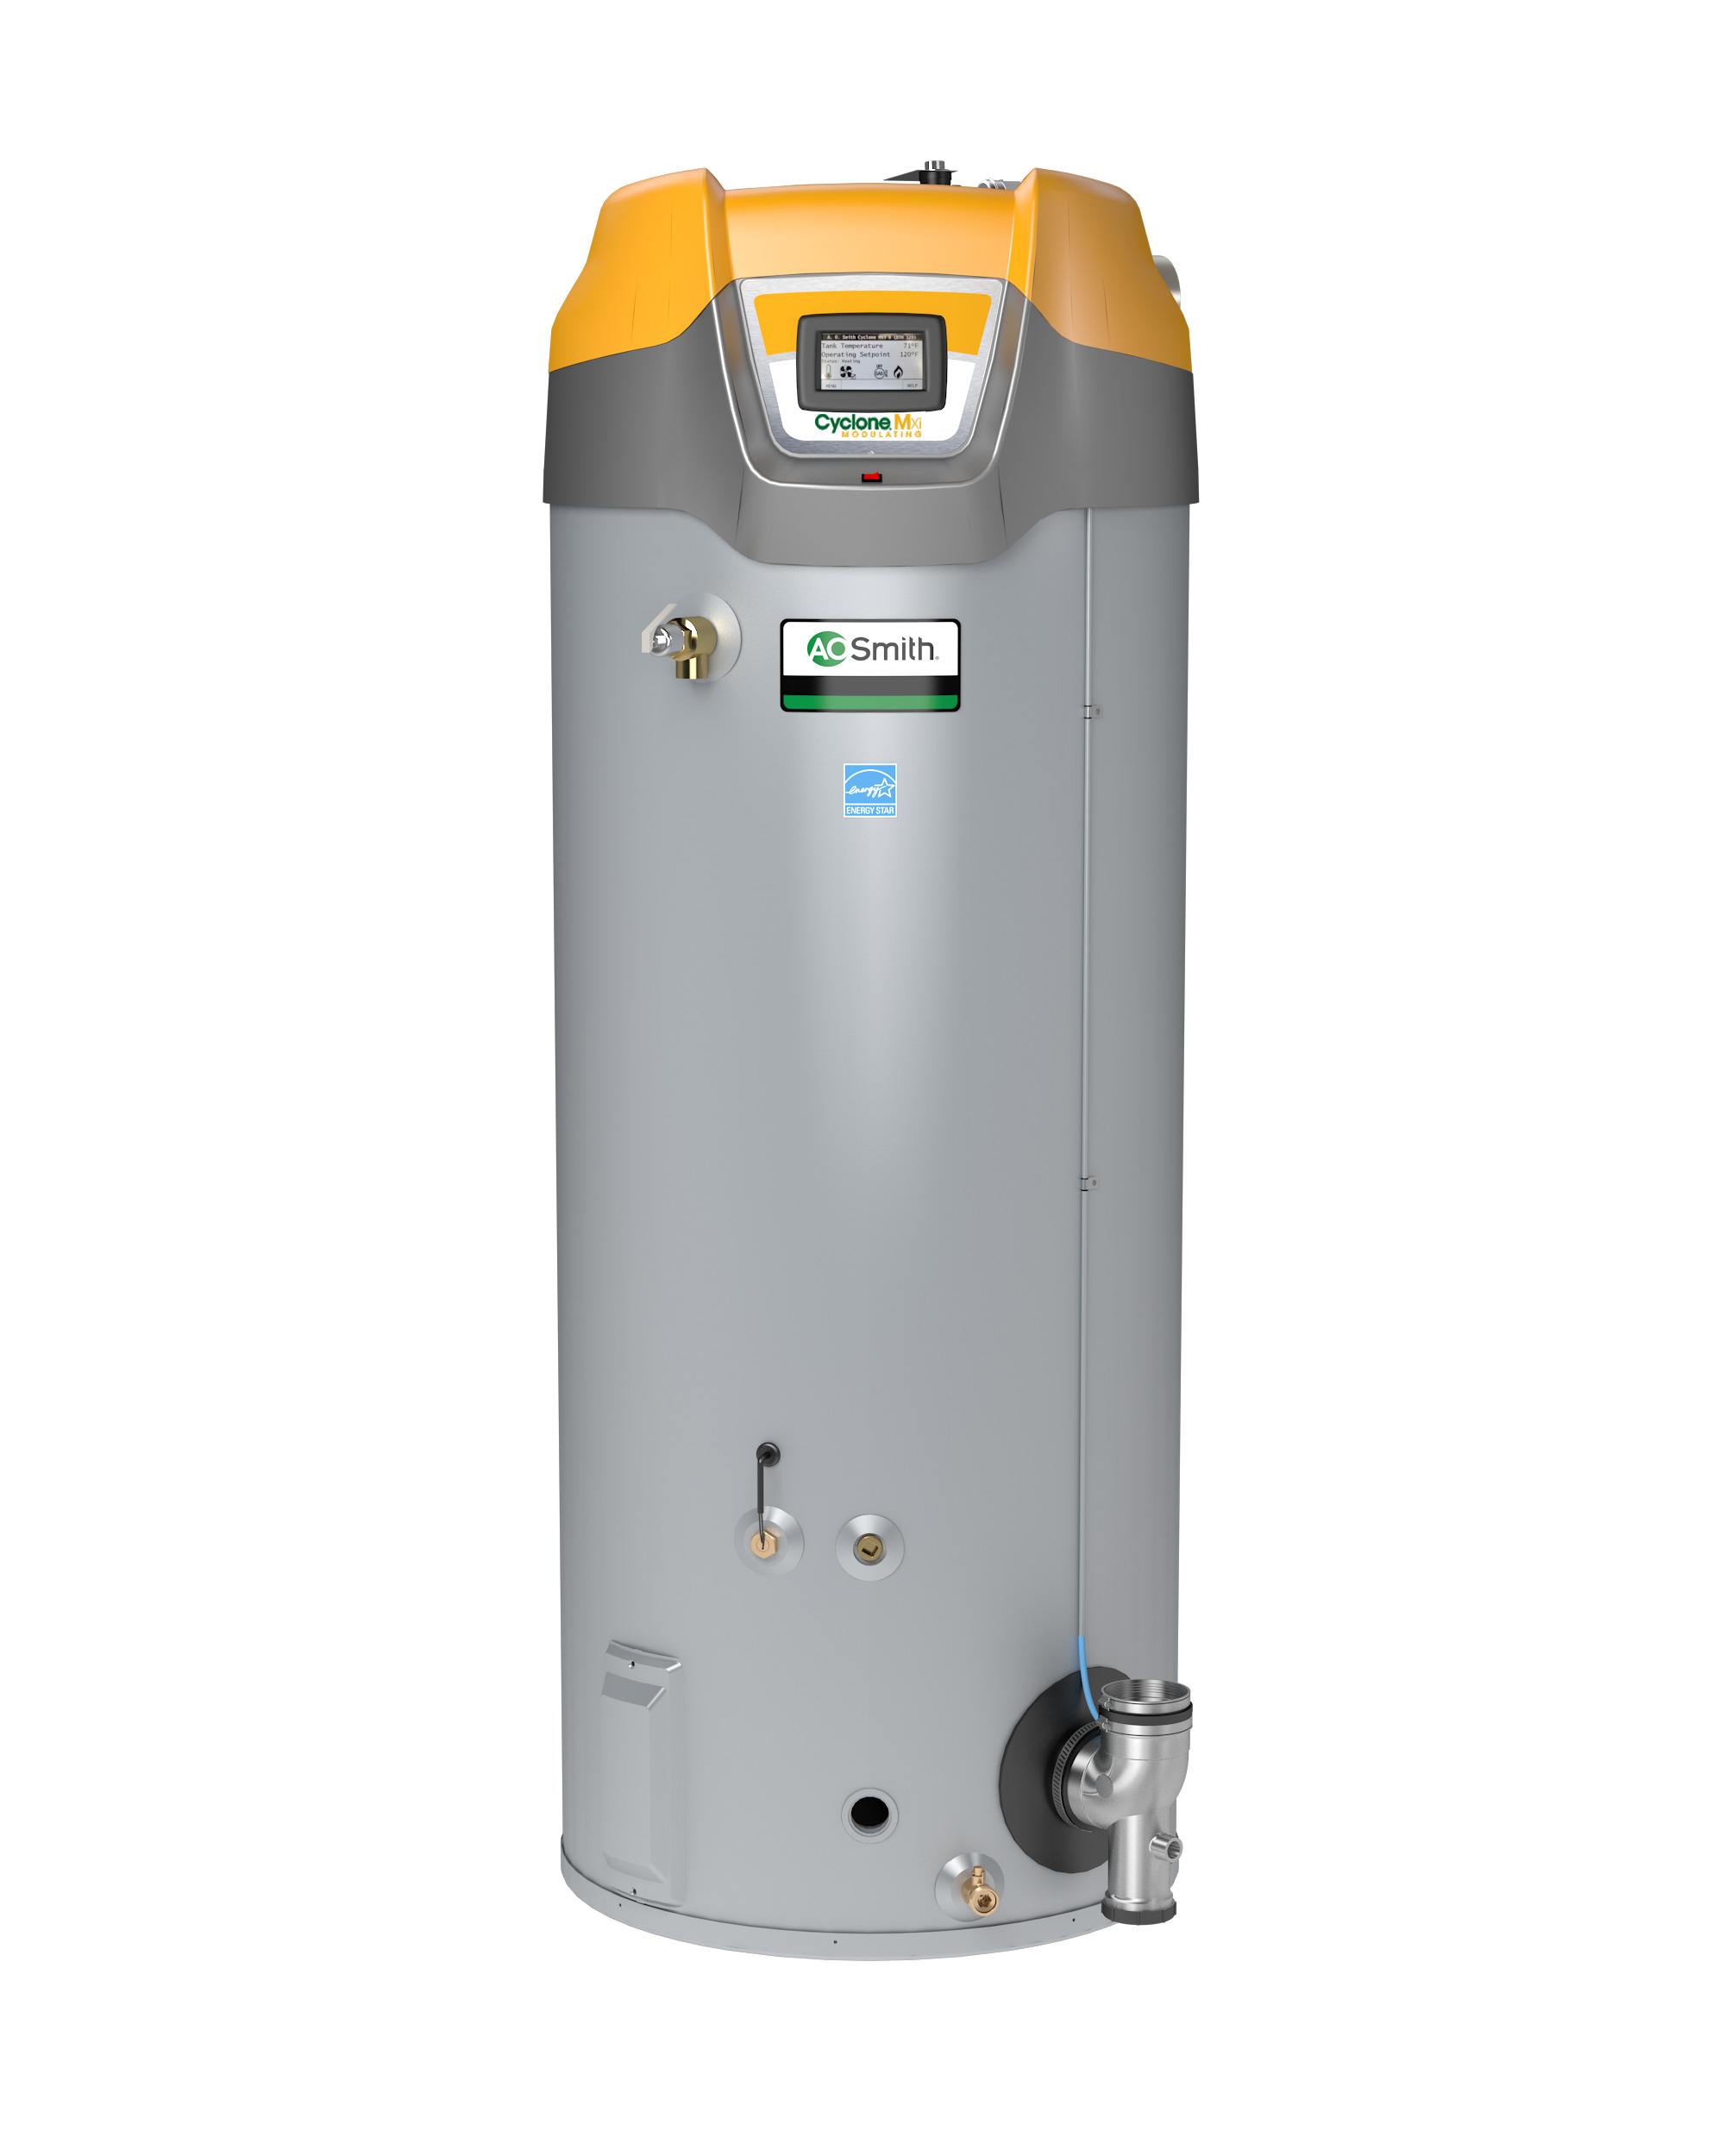 AO SMITH BTH-120-LP: 60 GALLON, 125,000 BTU, 95% THERMAL EFFICIENCY, 3inch VENT, LP (LIQUID PROPANE) CYCLONE Mxi MODULATING COMMERCIAL GAS WATER HEATER